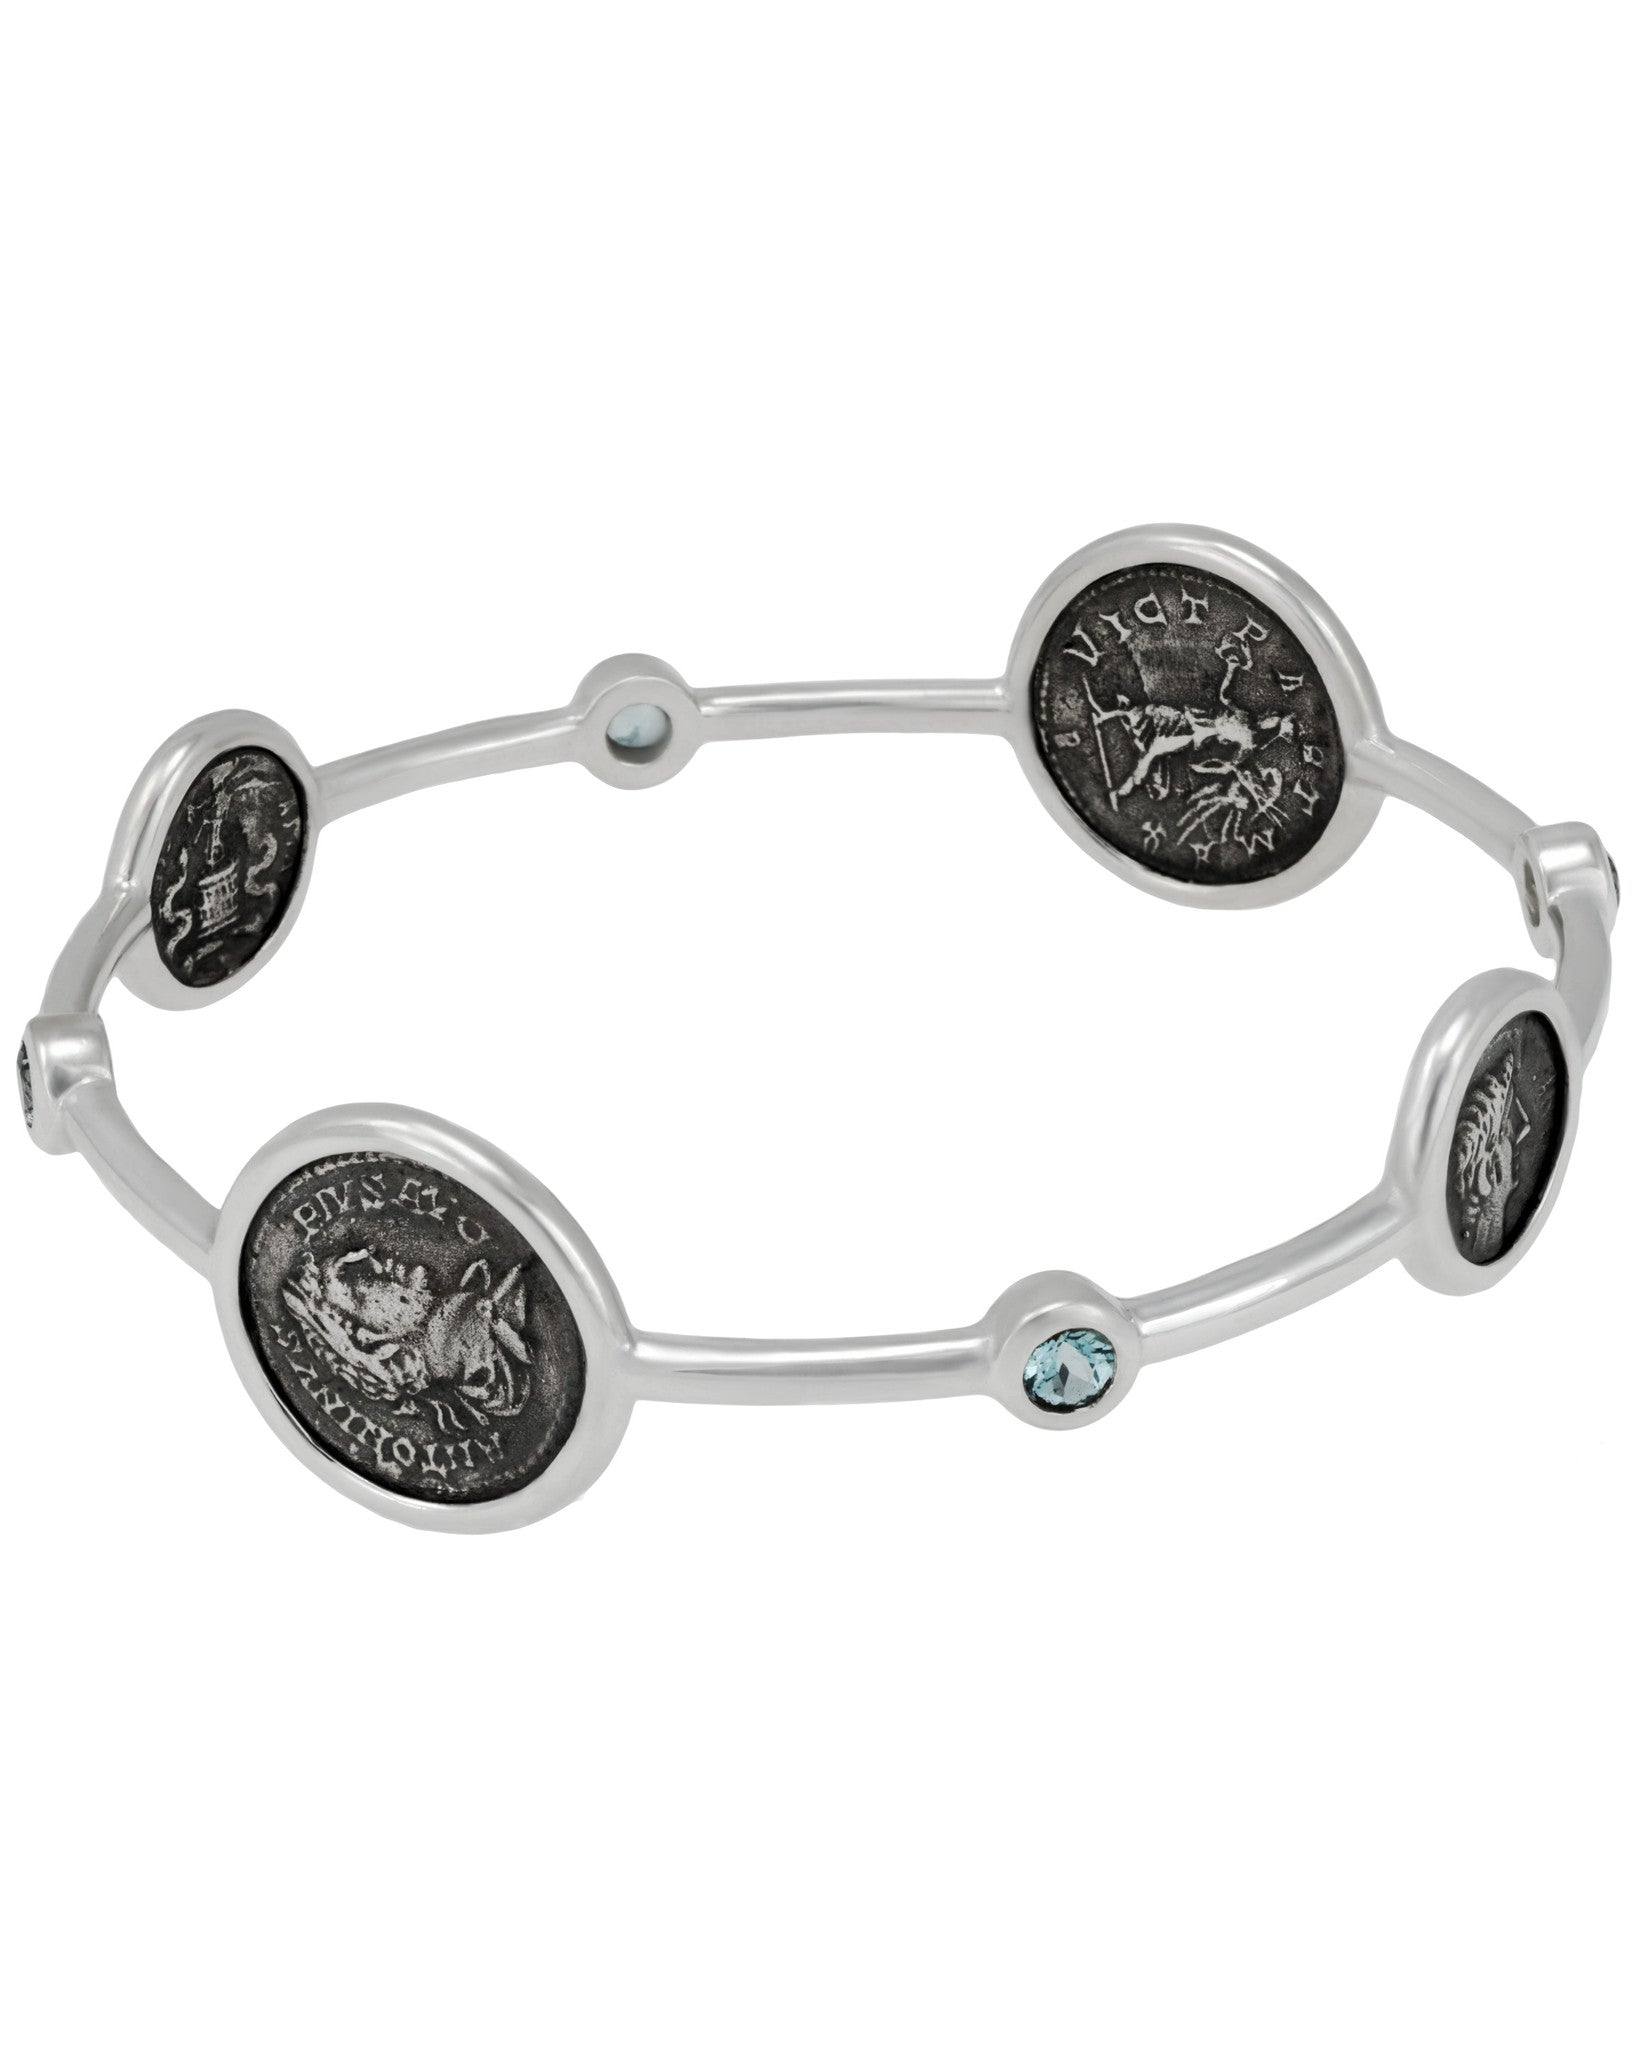 Legacy Vivace Sterling Silver Bangle w/ 2 Small Antique Ottaviano Coins and 2 Medium Antique Pius Coins and Blue Topaz (1.10 ct. tw.)